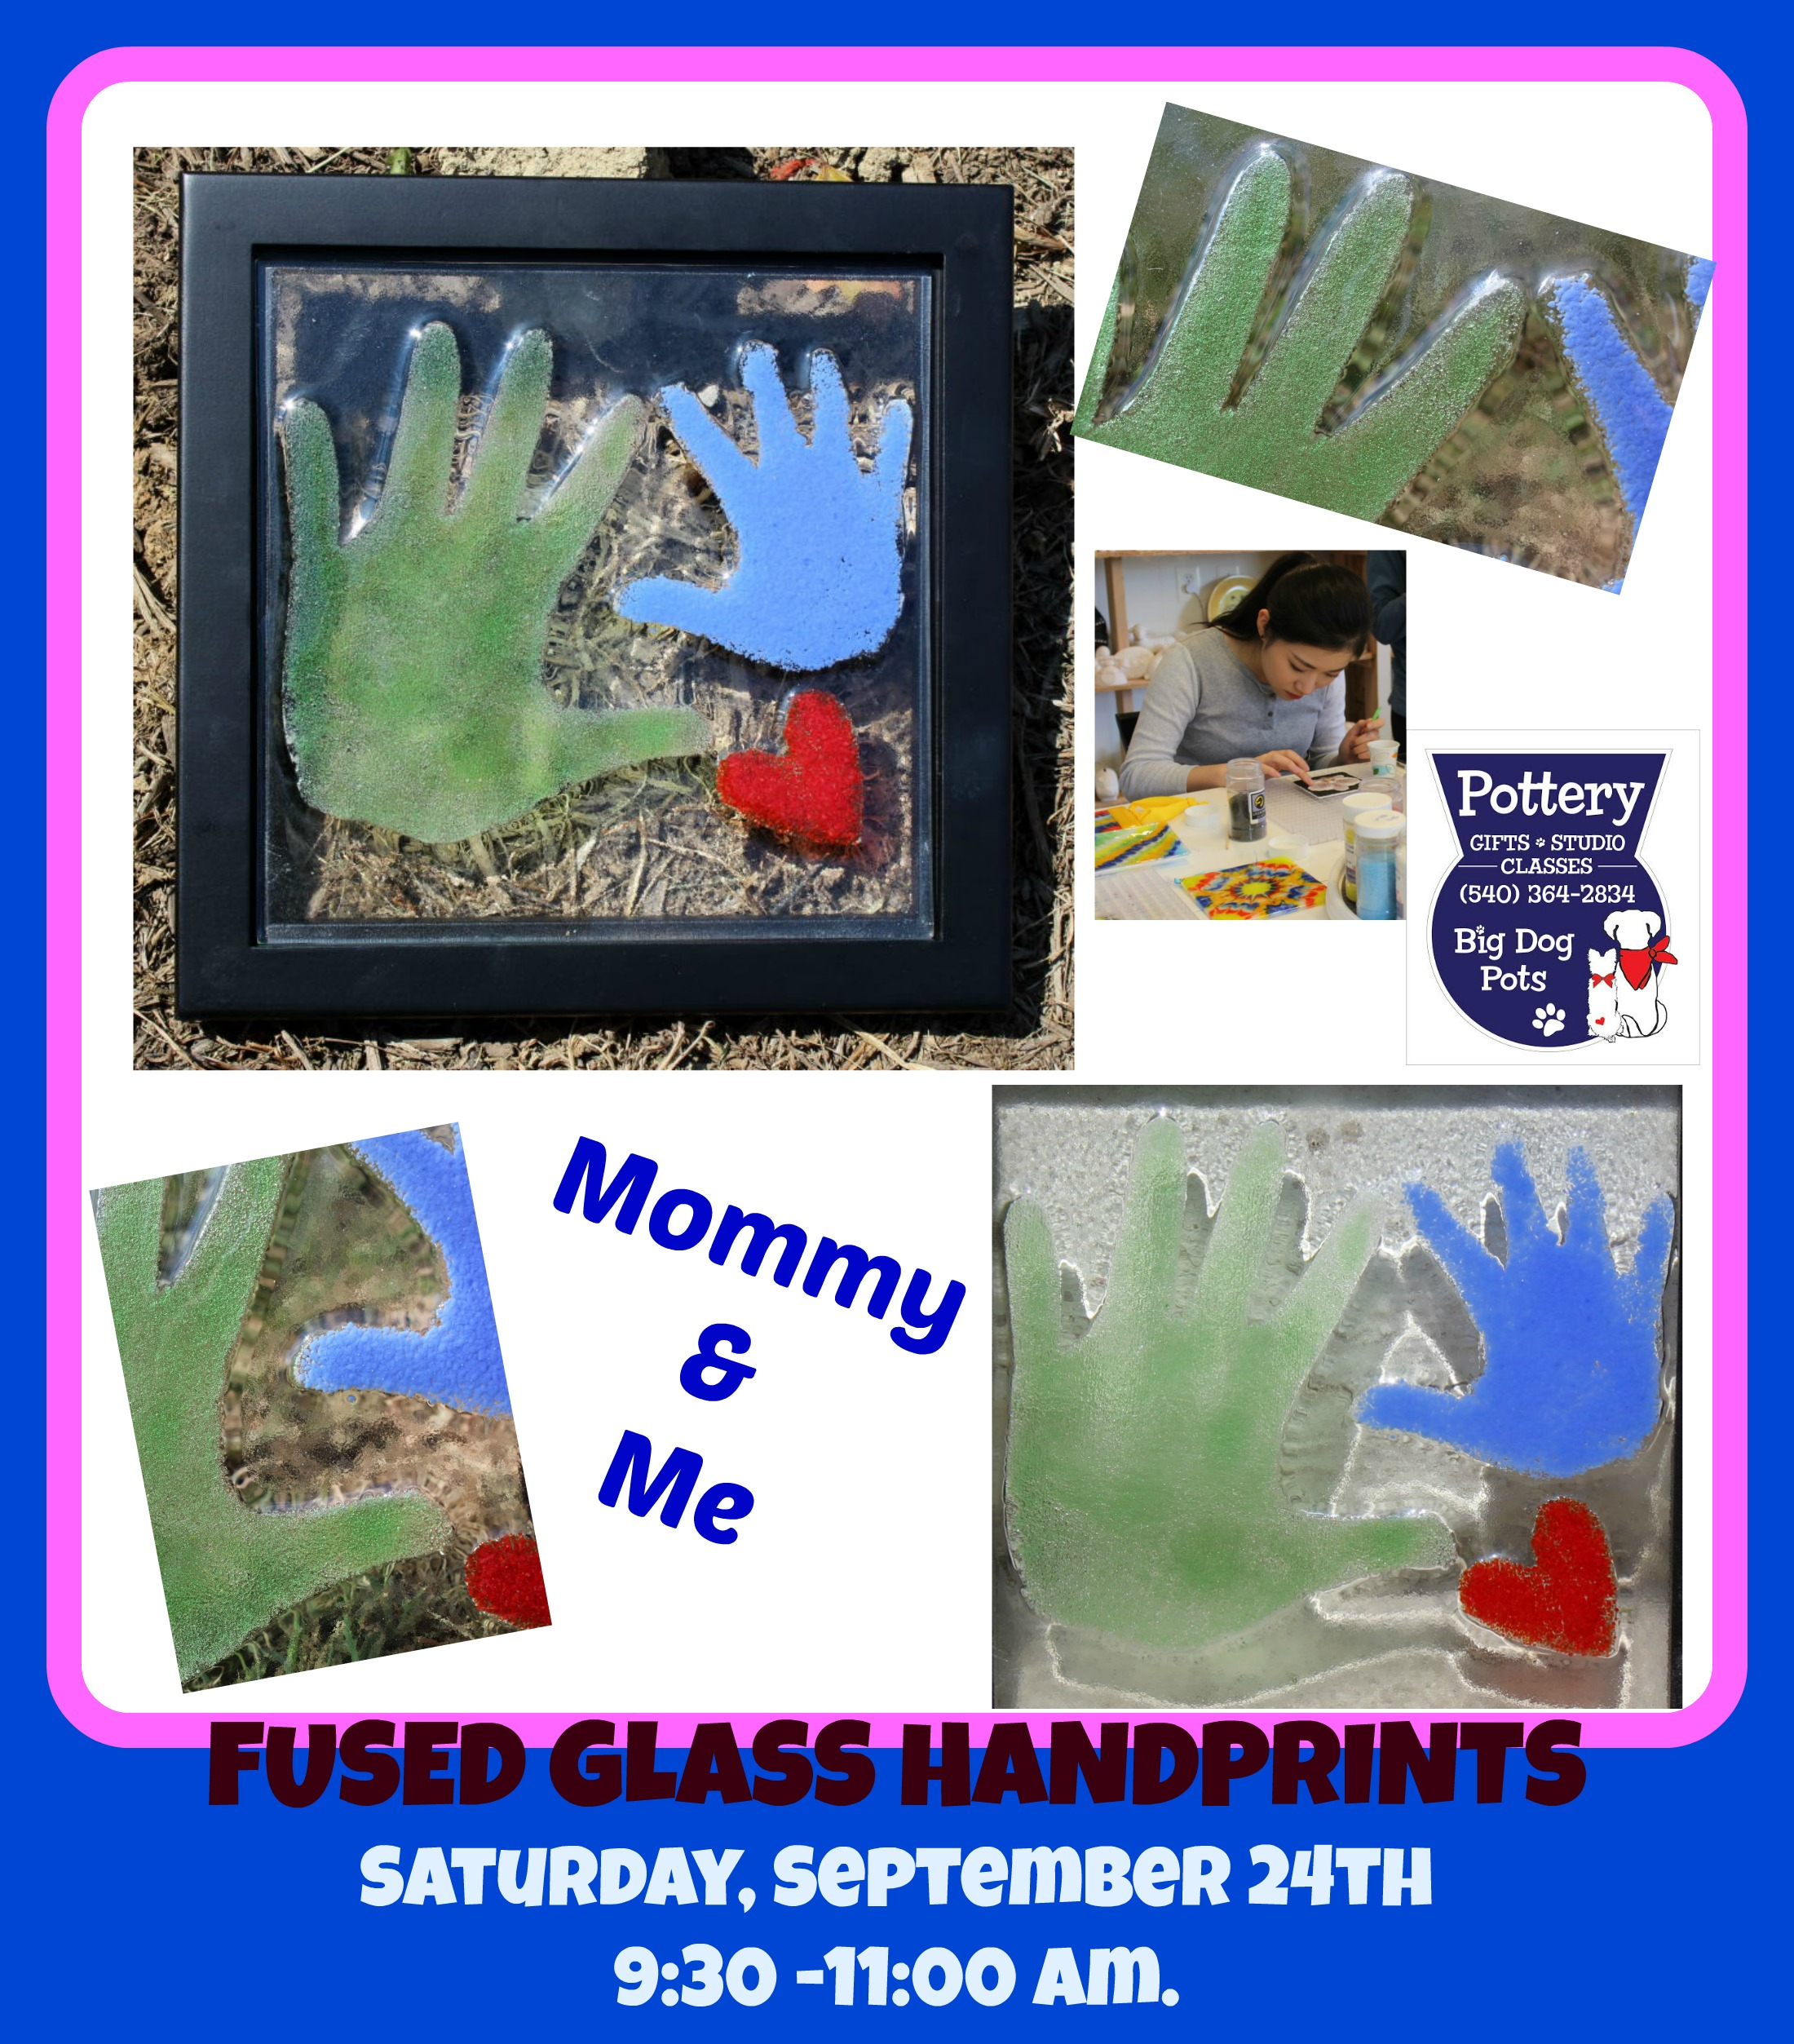 Fused Glass Family Fun Workshop 540-364-2834 by  in